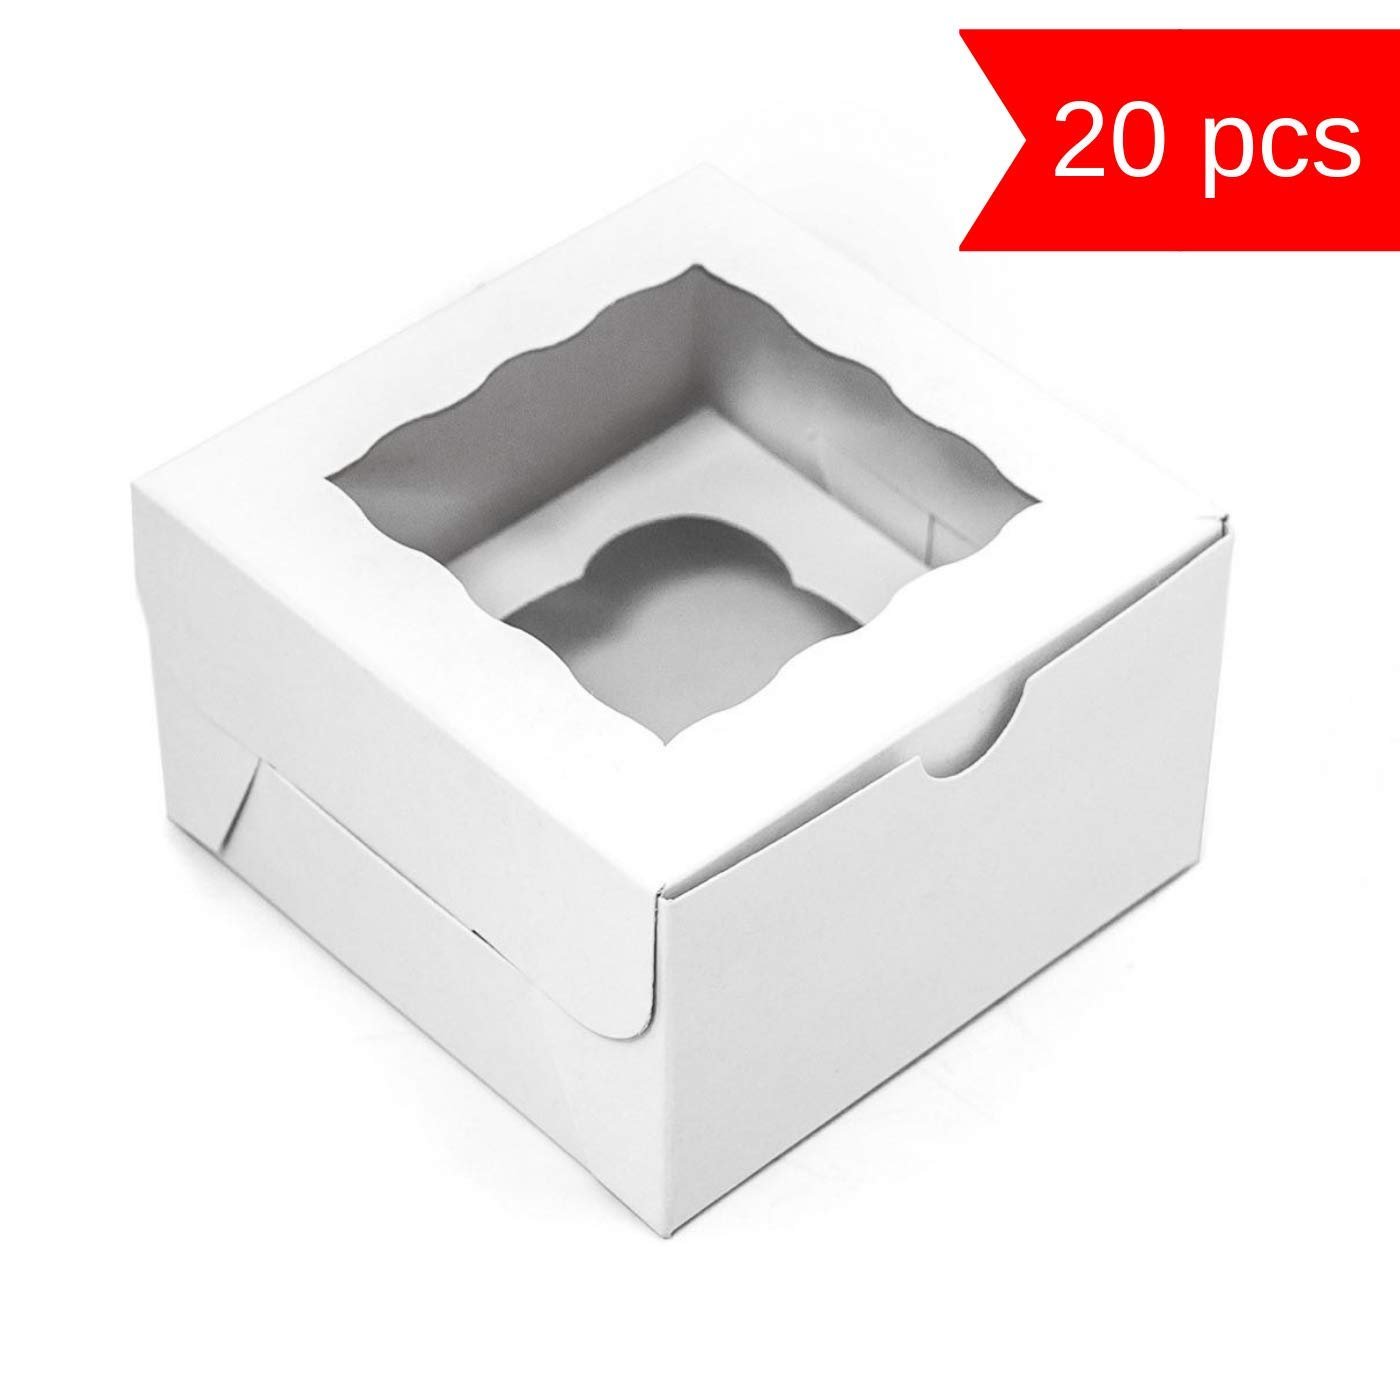 Individual Cupcake Boxes - Kraft Paper Cupcake Containers with Window 4x4x2.5 Inch - Single Muffin Box - Perfect for Mini|Standard|Jumbo Cupcakes|Bakery|Pastry|Sweets - 20 Pack